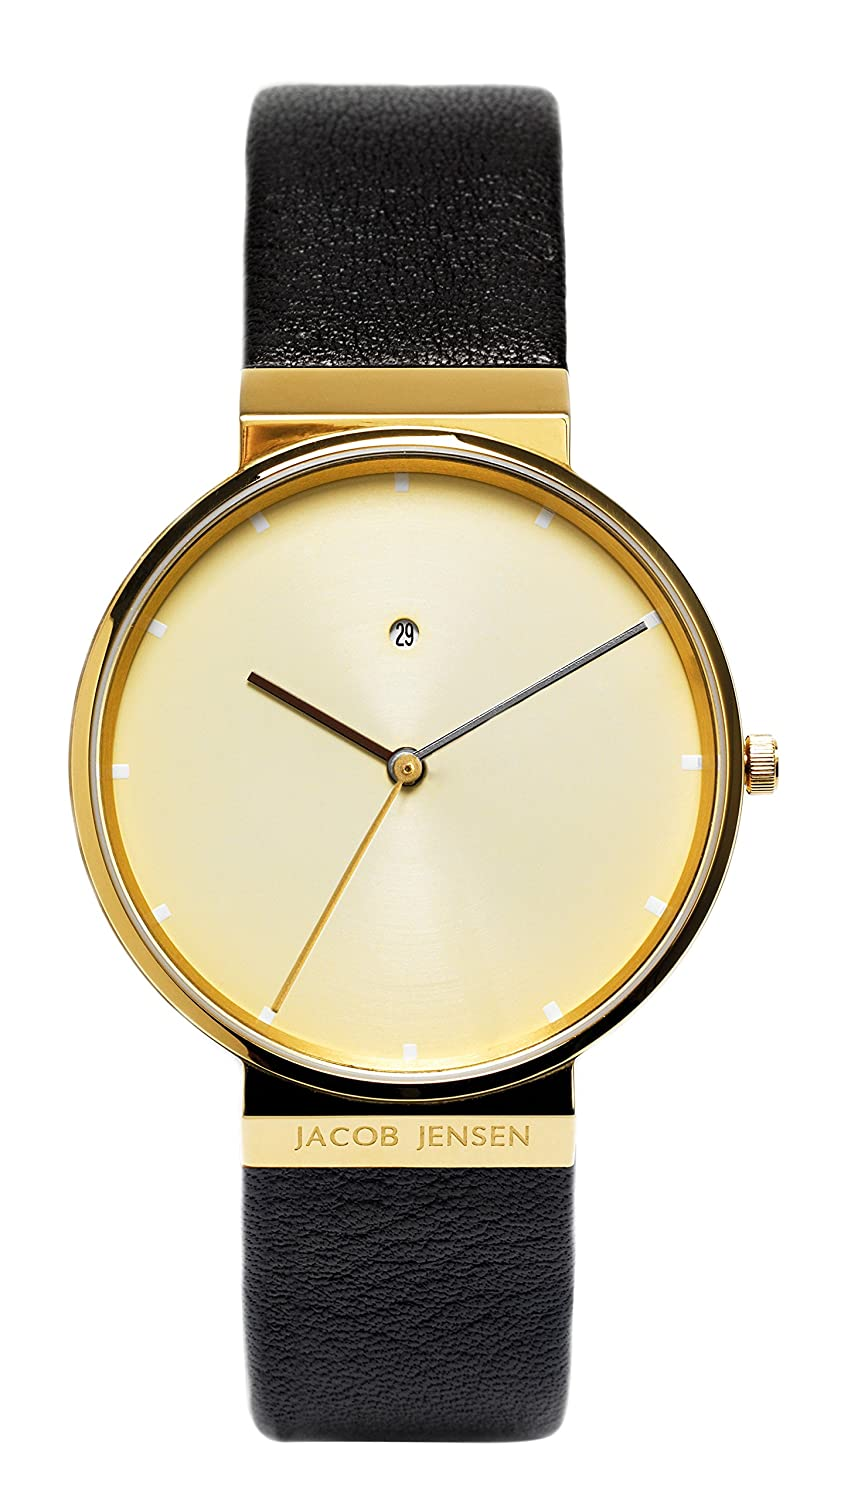 Jacob Jensen Herrenarmbanduhr New Dimension 845